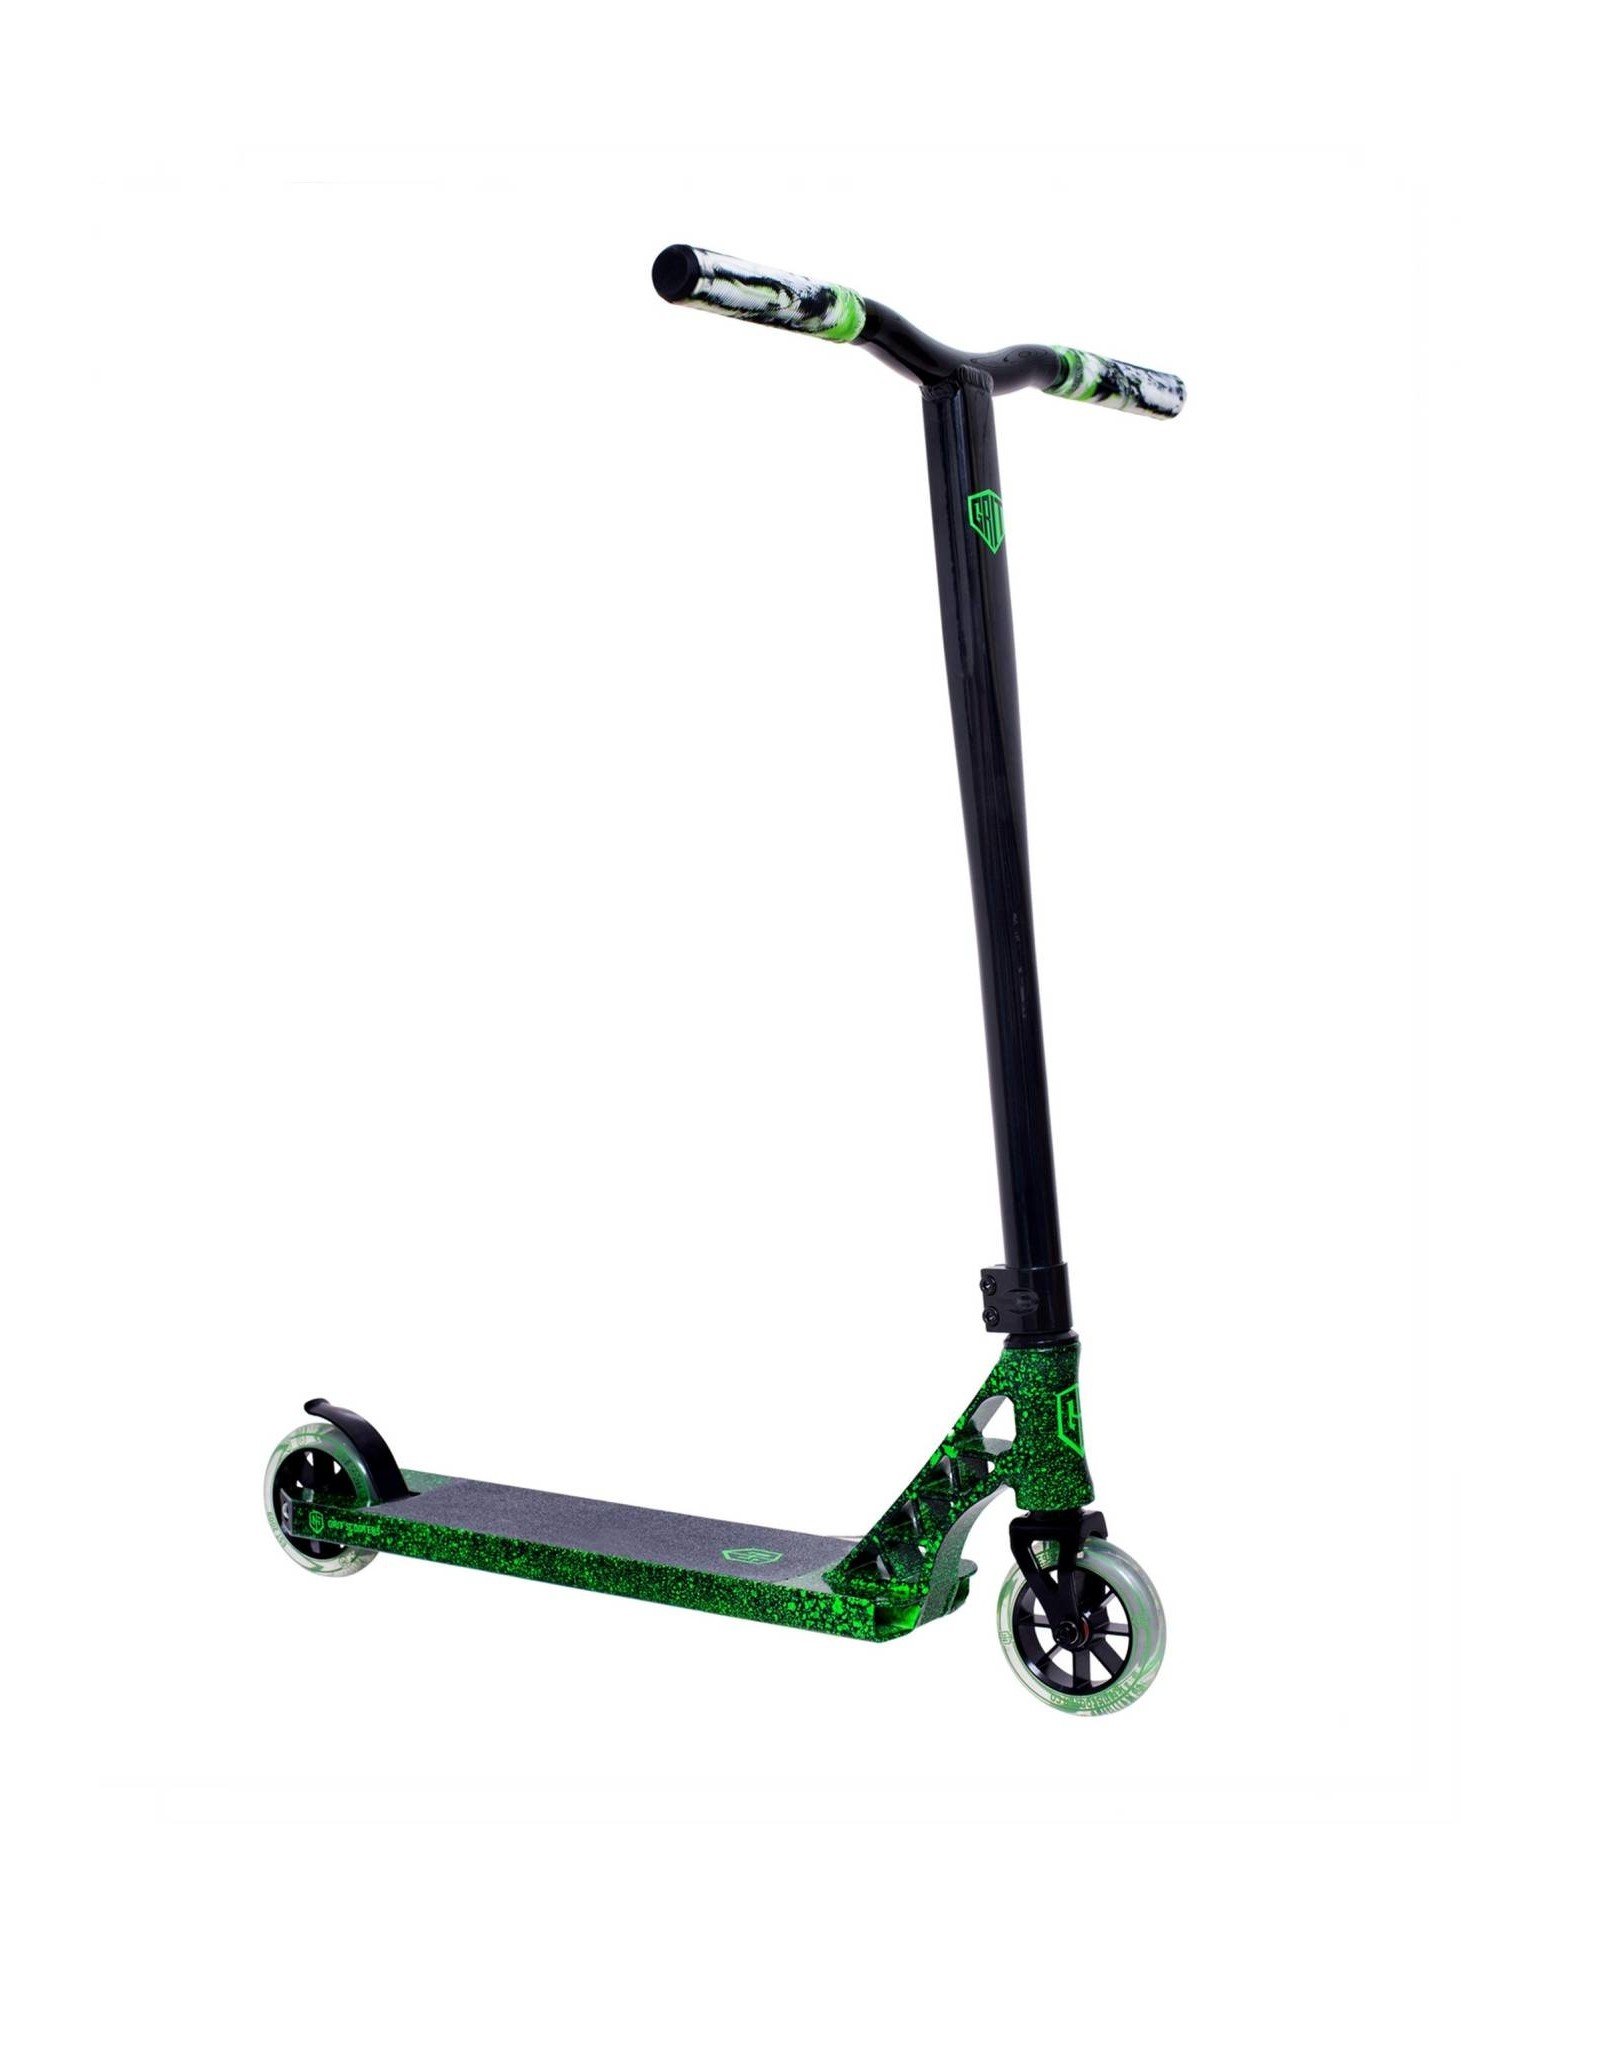 GRIT Grit Elite 2021 Black Green Marble / Black Scooter